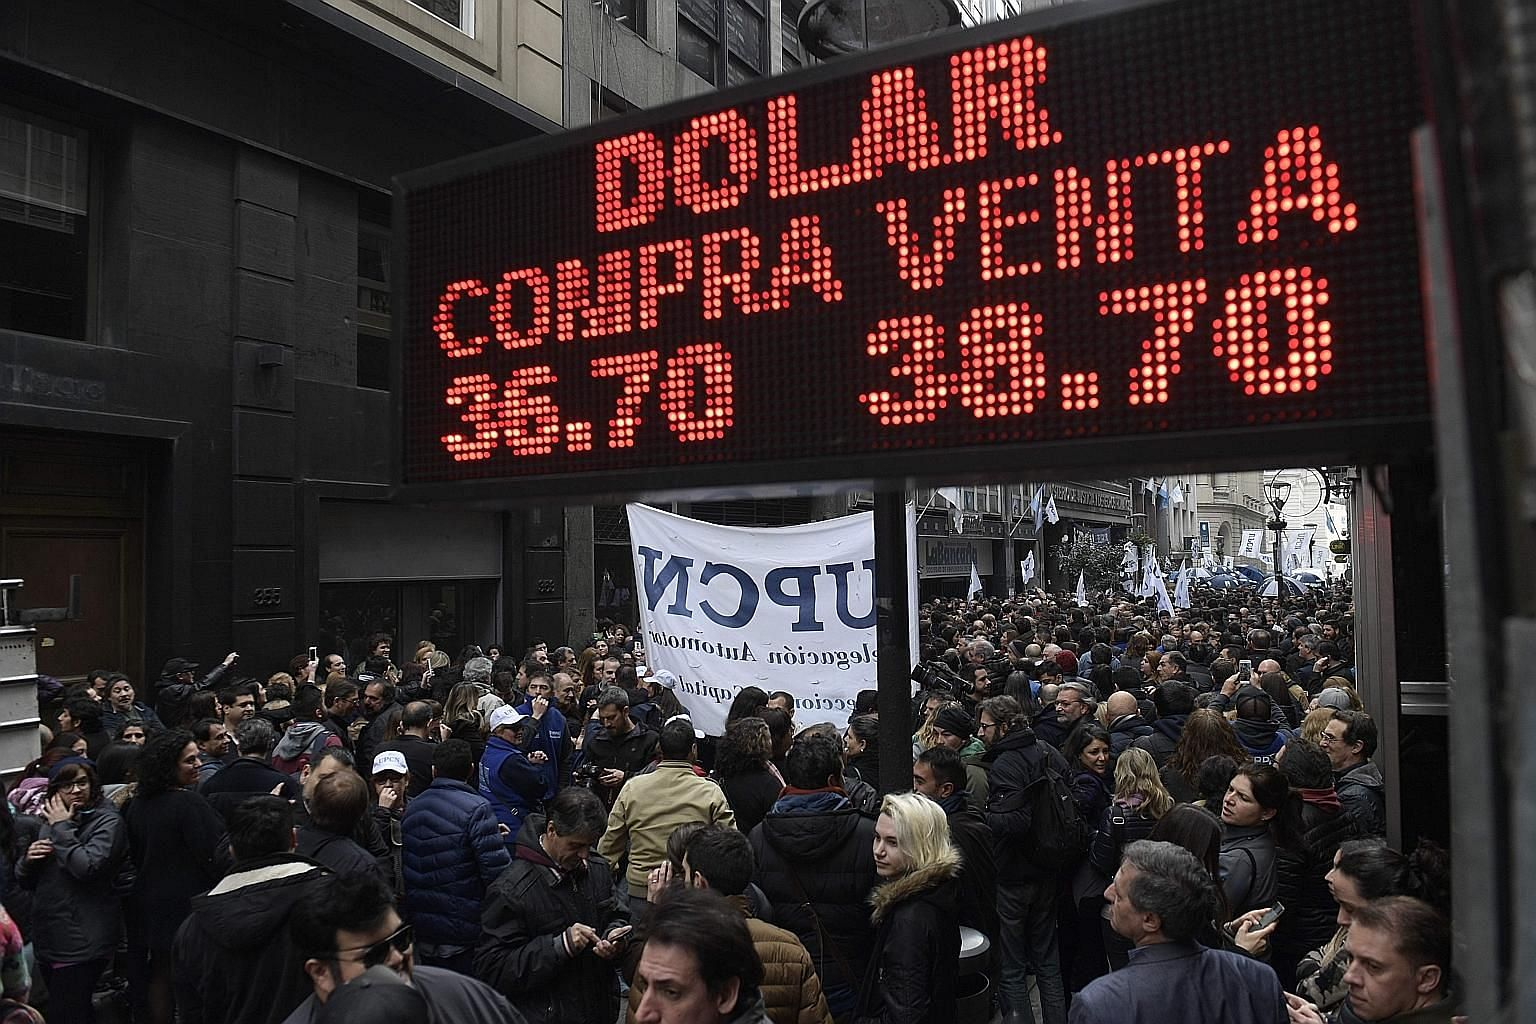 Argentina's external debt was considered relatively low until the peso's recent sharp depreciation, which spurred the government to request funds from the International Monetary Fund.